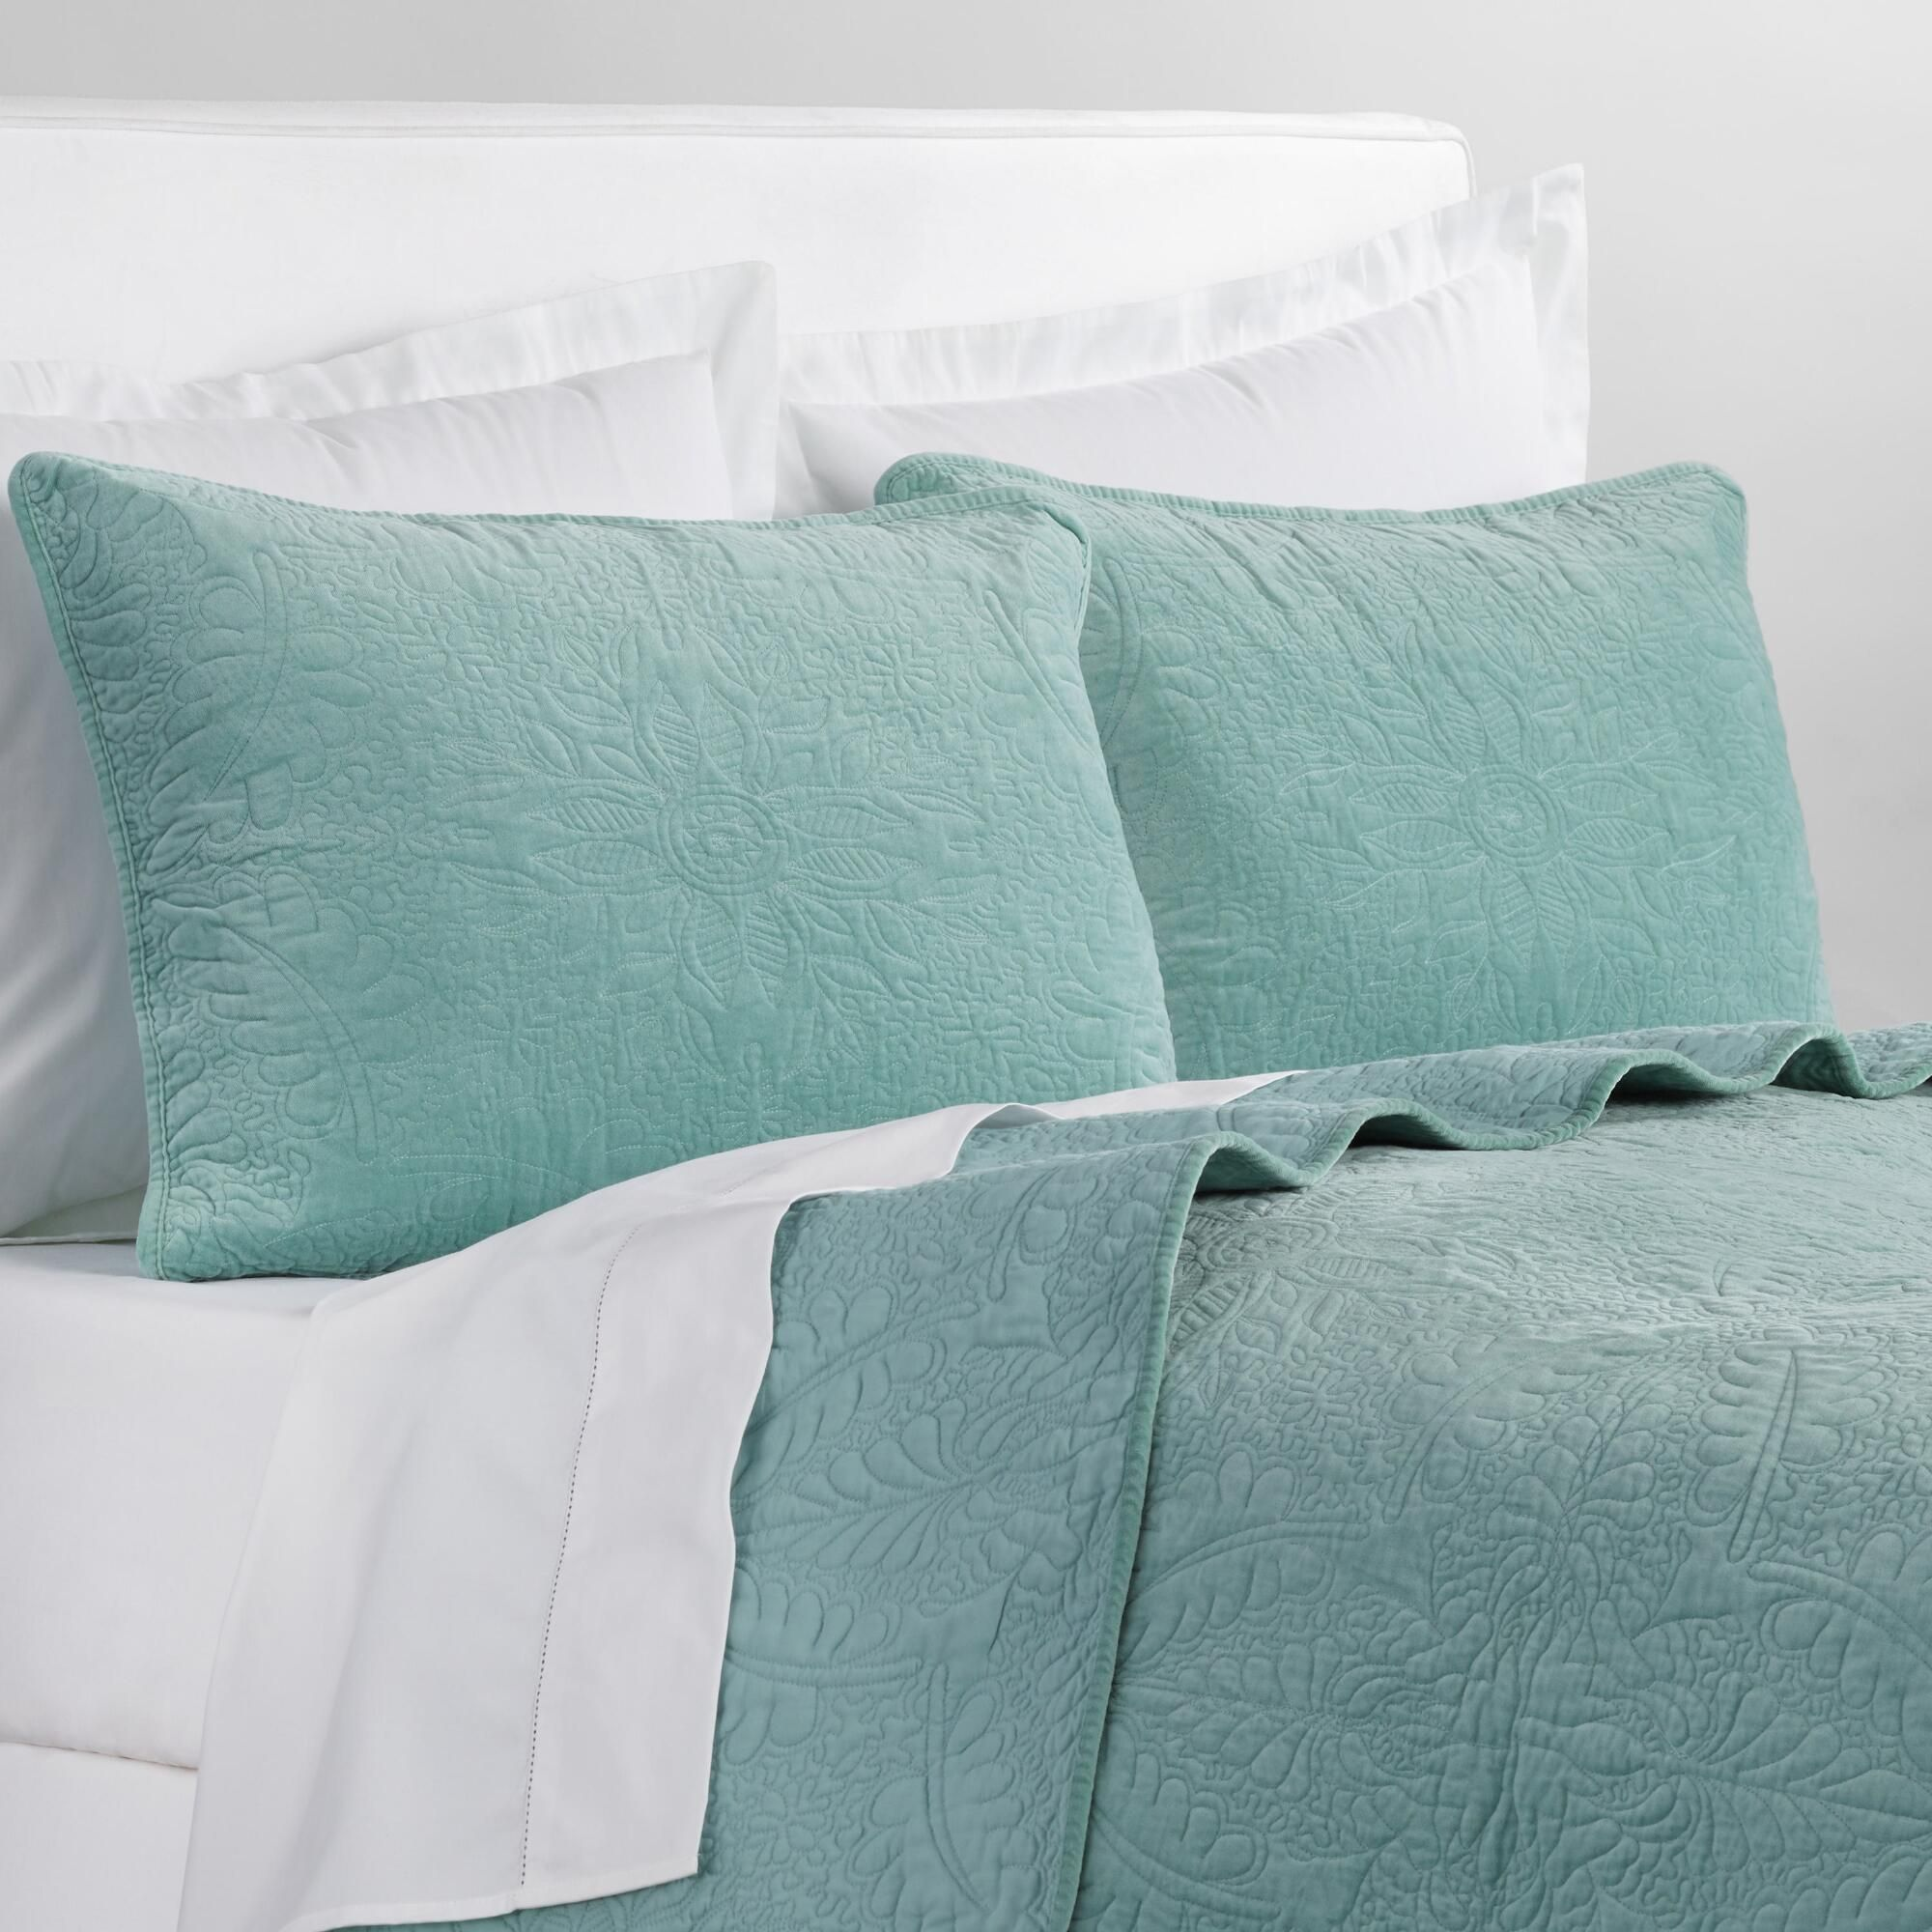 comforter bedding cannon set shopping bed silky online way your shld url velvet getimage shop